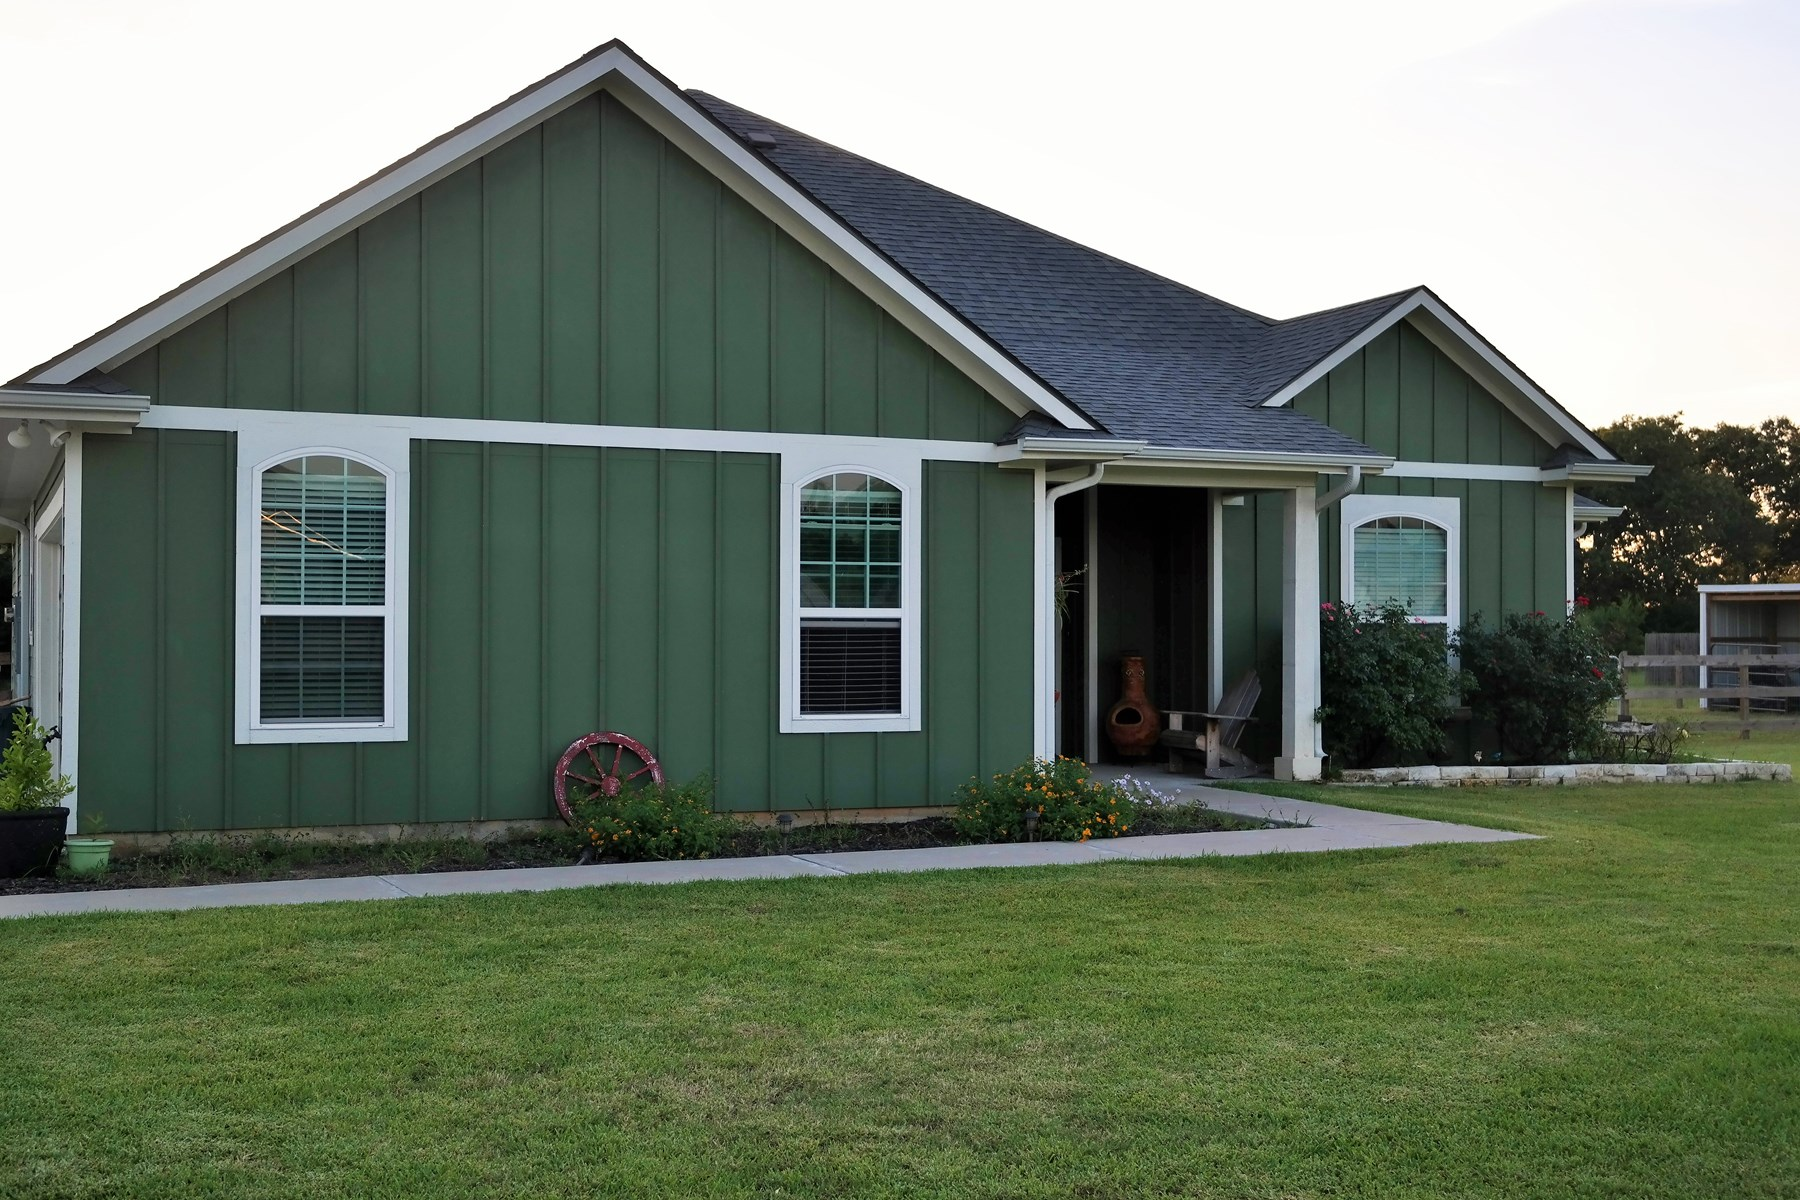 Country Home in North Zulch on 1.474 acres